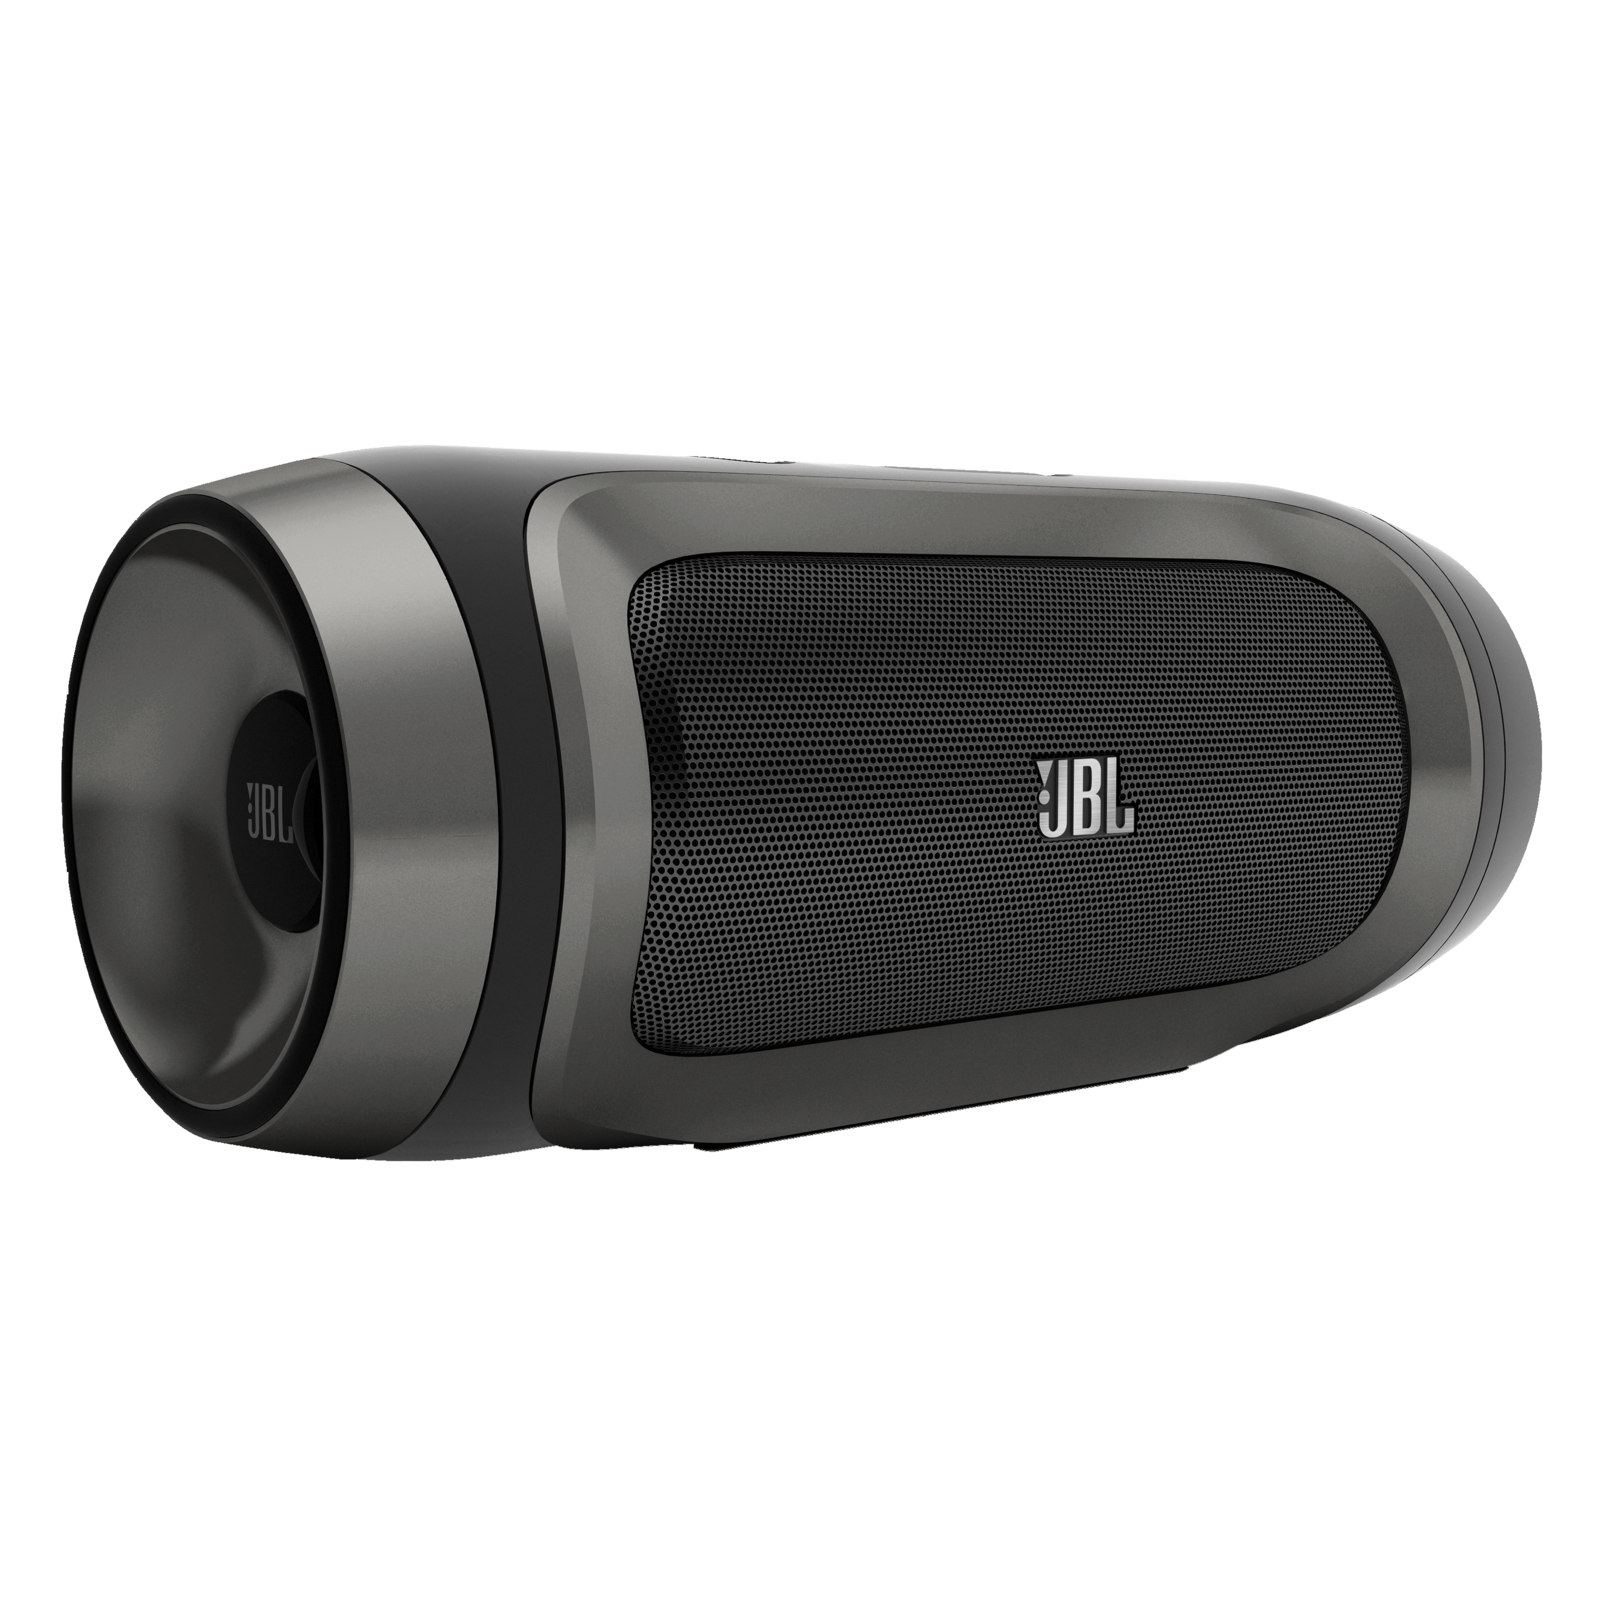 JBL Charge - Black / Silver - Portable Wireless Bluetooth Speaker with USB Charger - Hero